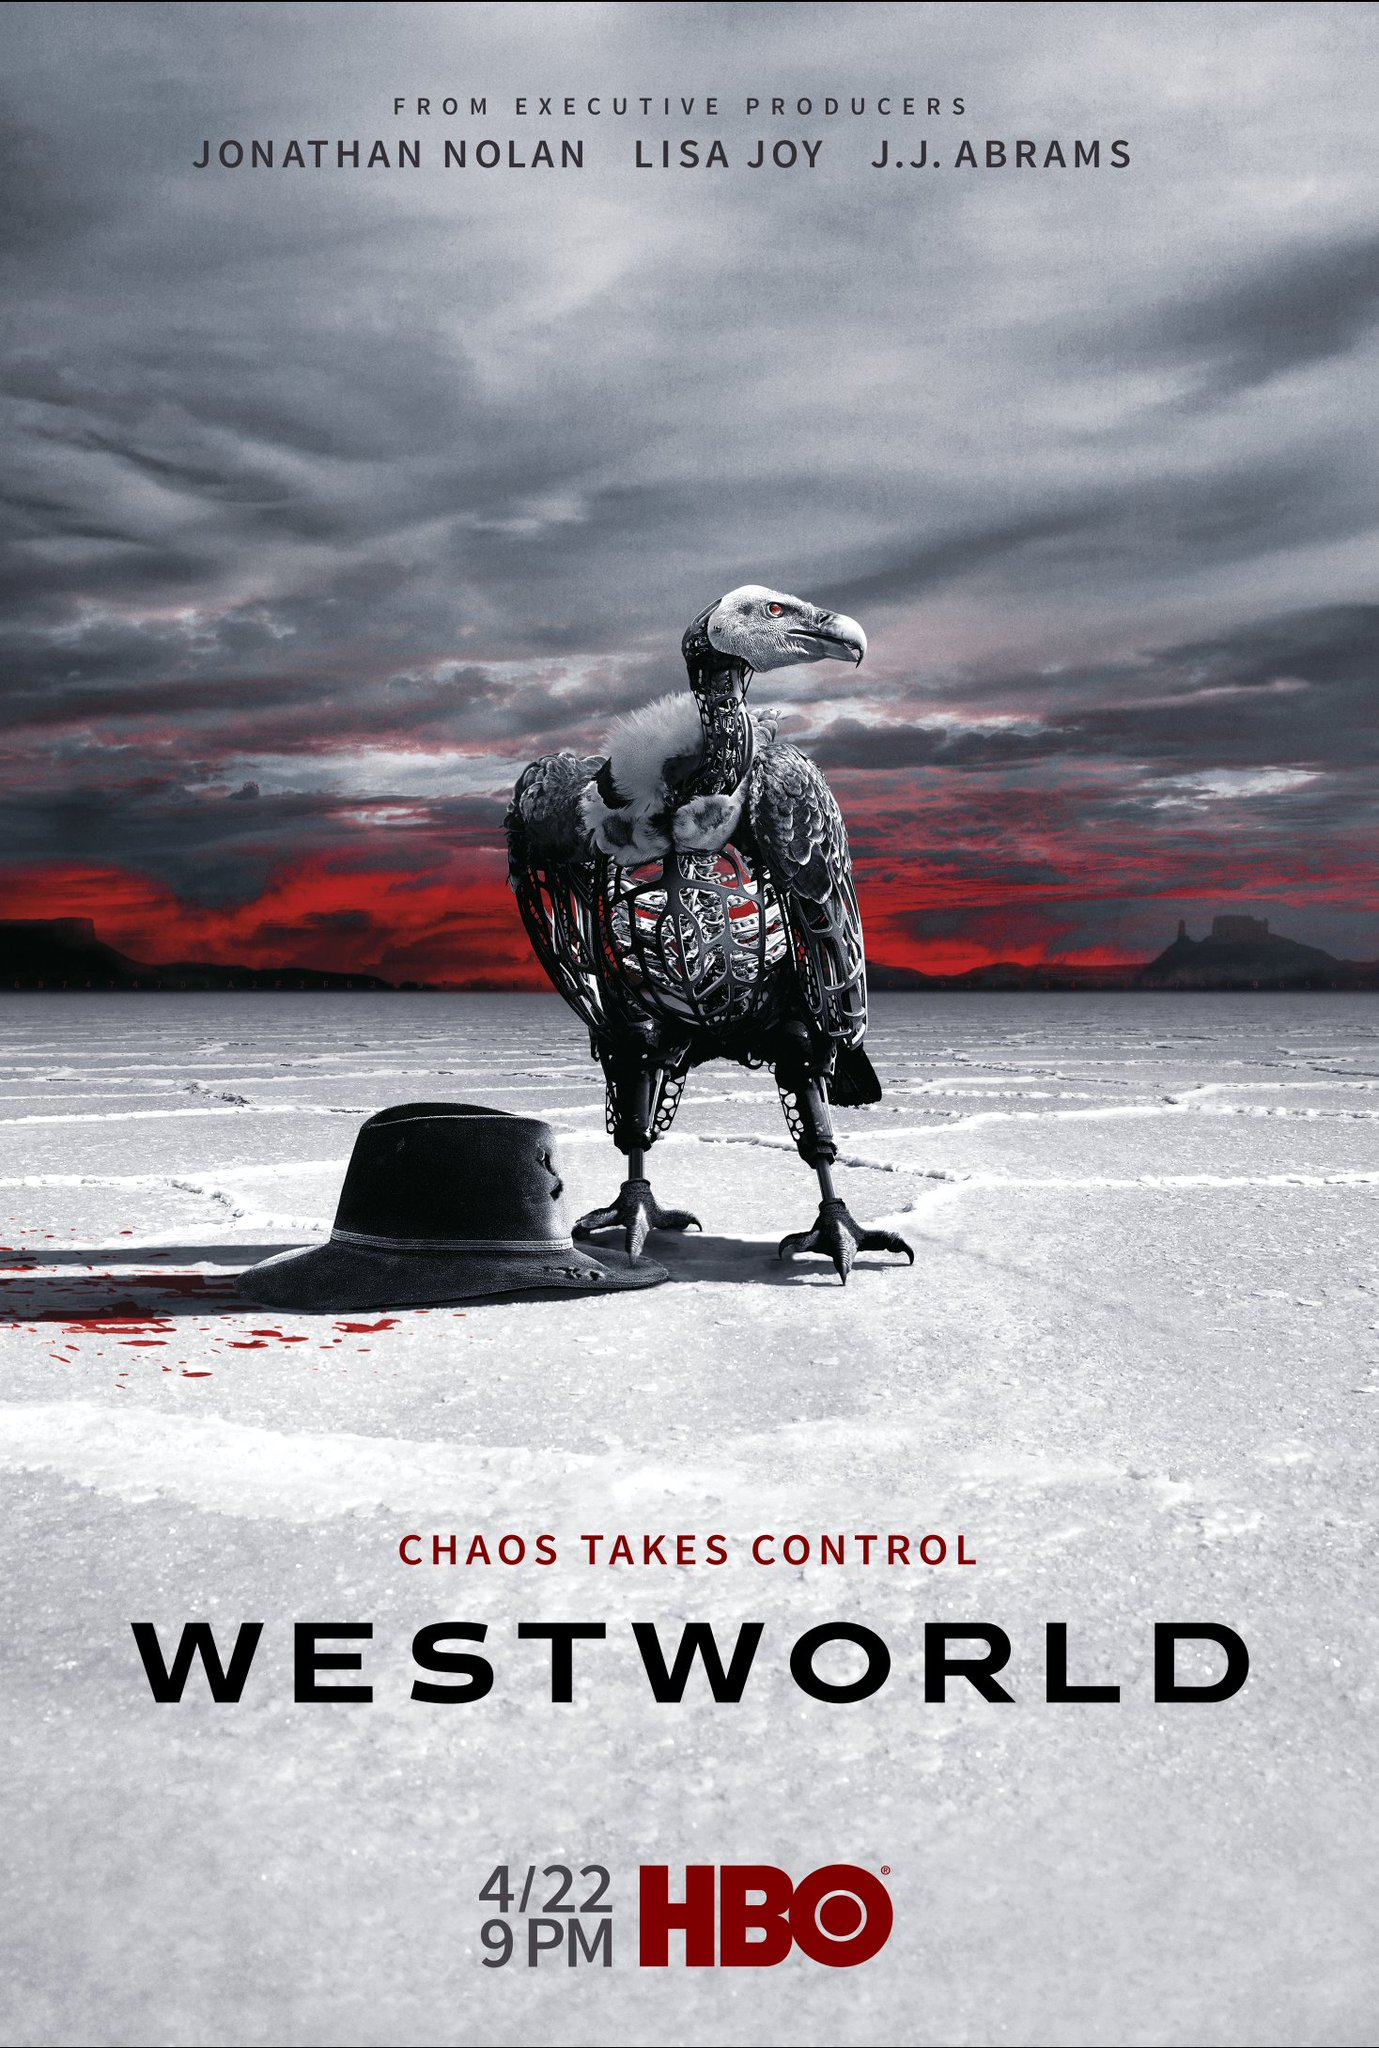 Westworld Season 1 COMPLETE BluRay 480p, 720p, 1080p & 4K-2160p